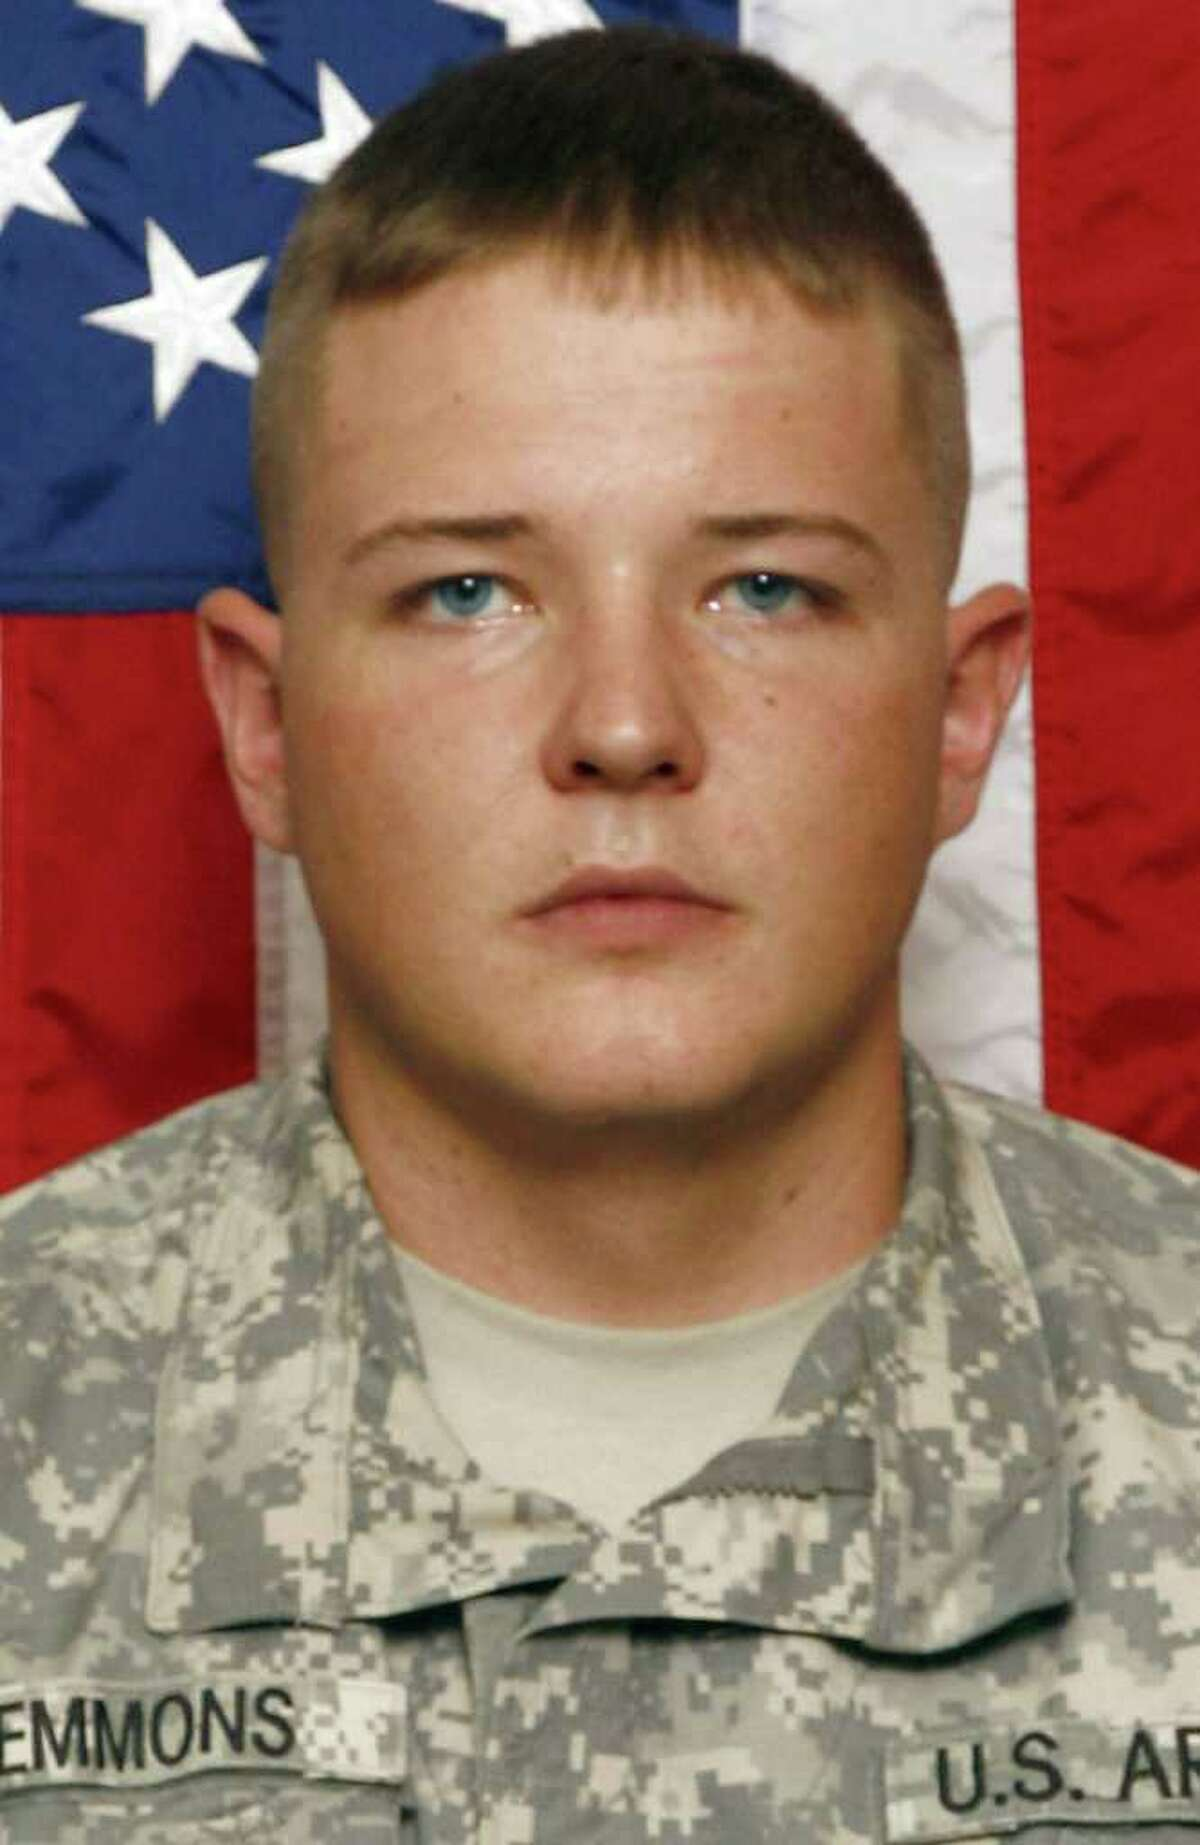 This Sept. 2010 photo released by the U.S. Army shows Spc. Richard Emmons III, 22, of North Granby, Conn., who died Tuesday, May 31, 2011, after a rocket-propelled grenade hit his vehicle in Logar Province, Afghanistan. (AP Photo/U.S. Army)